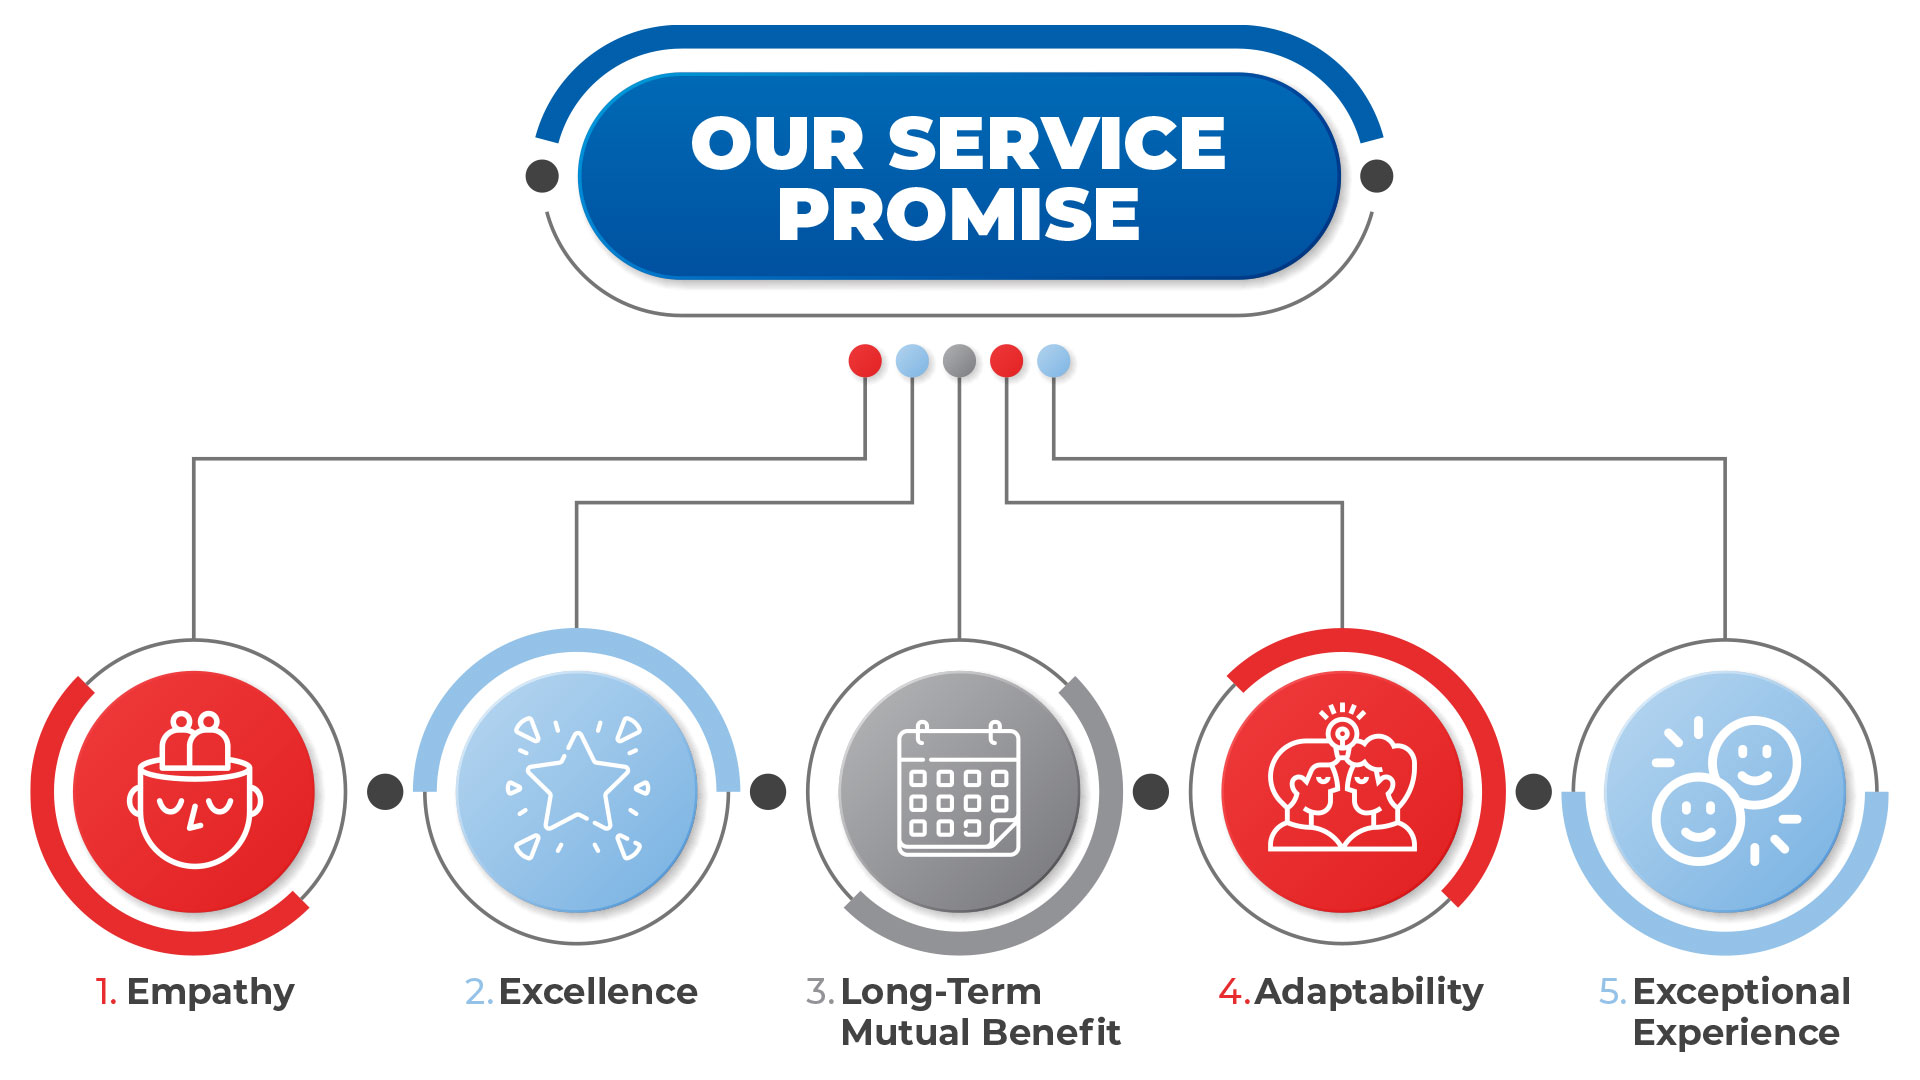 Our Service Promise Image